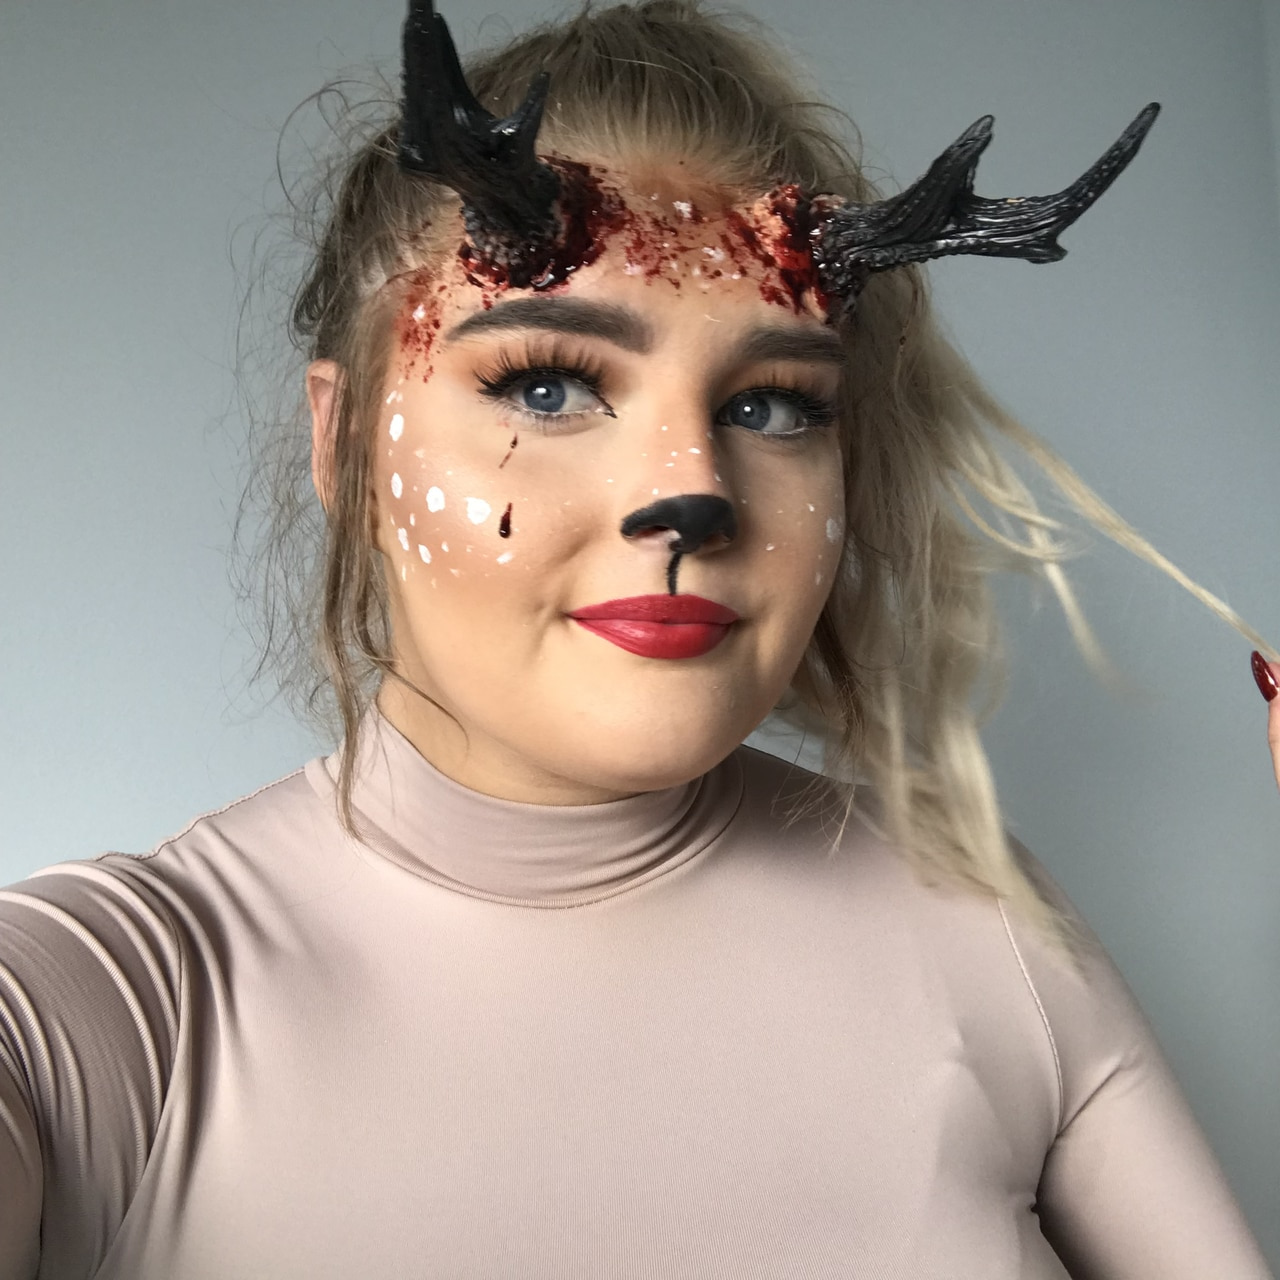 reindeer, special effects, halloween costume and sfx